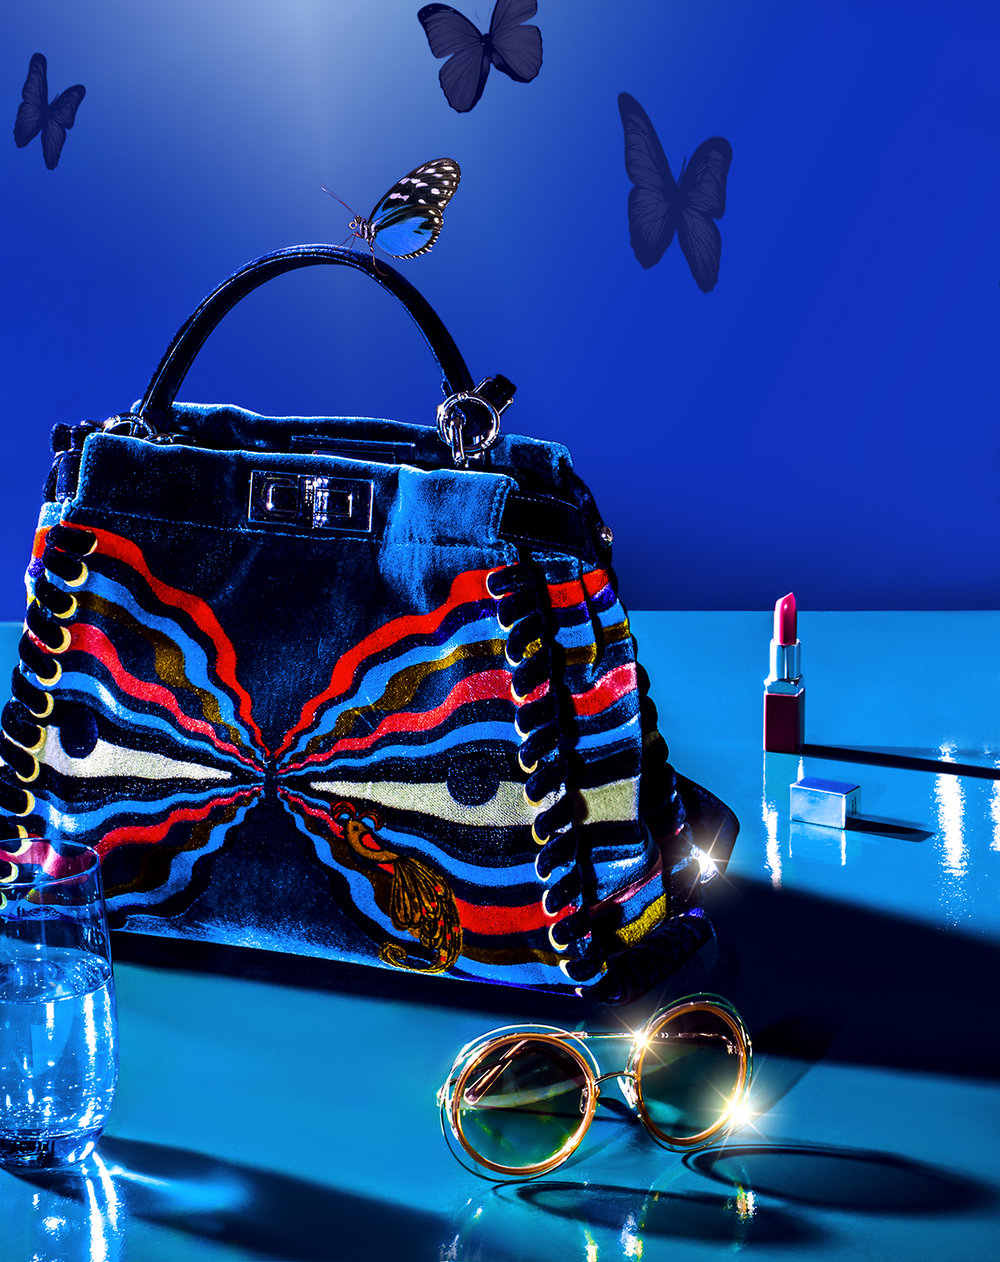 FENDI BAG 2016 FOR D REPUBBLICA